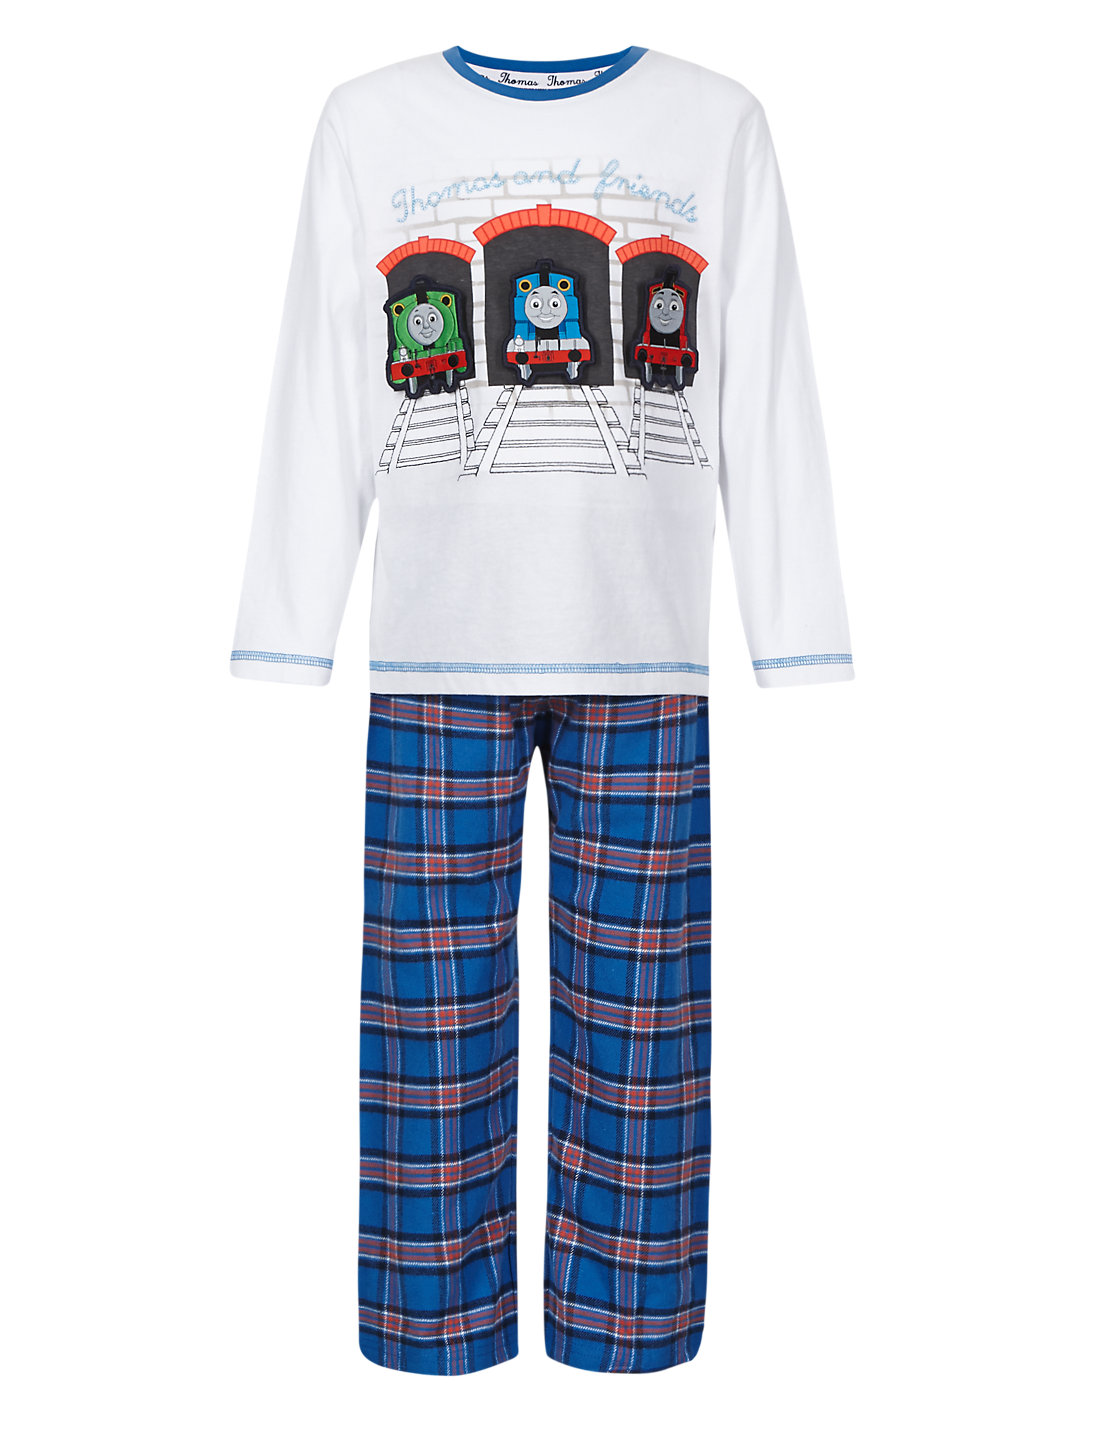 Shirt design for friends